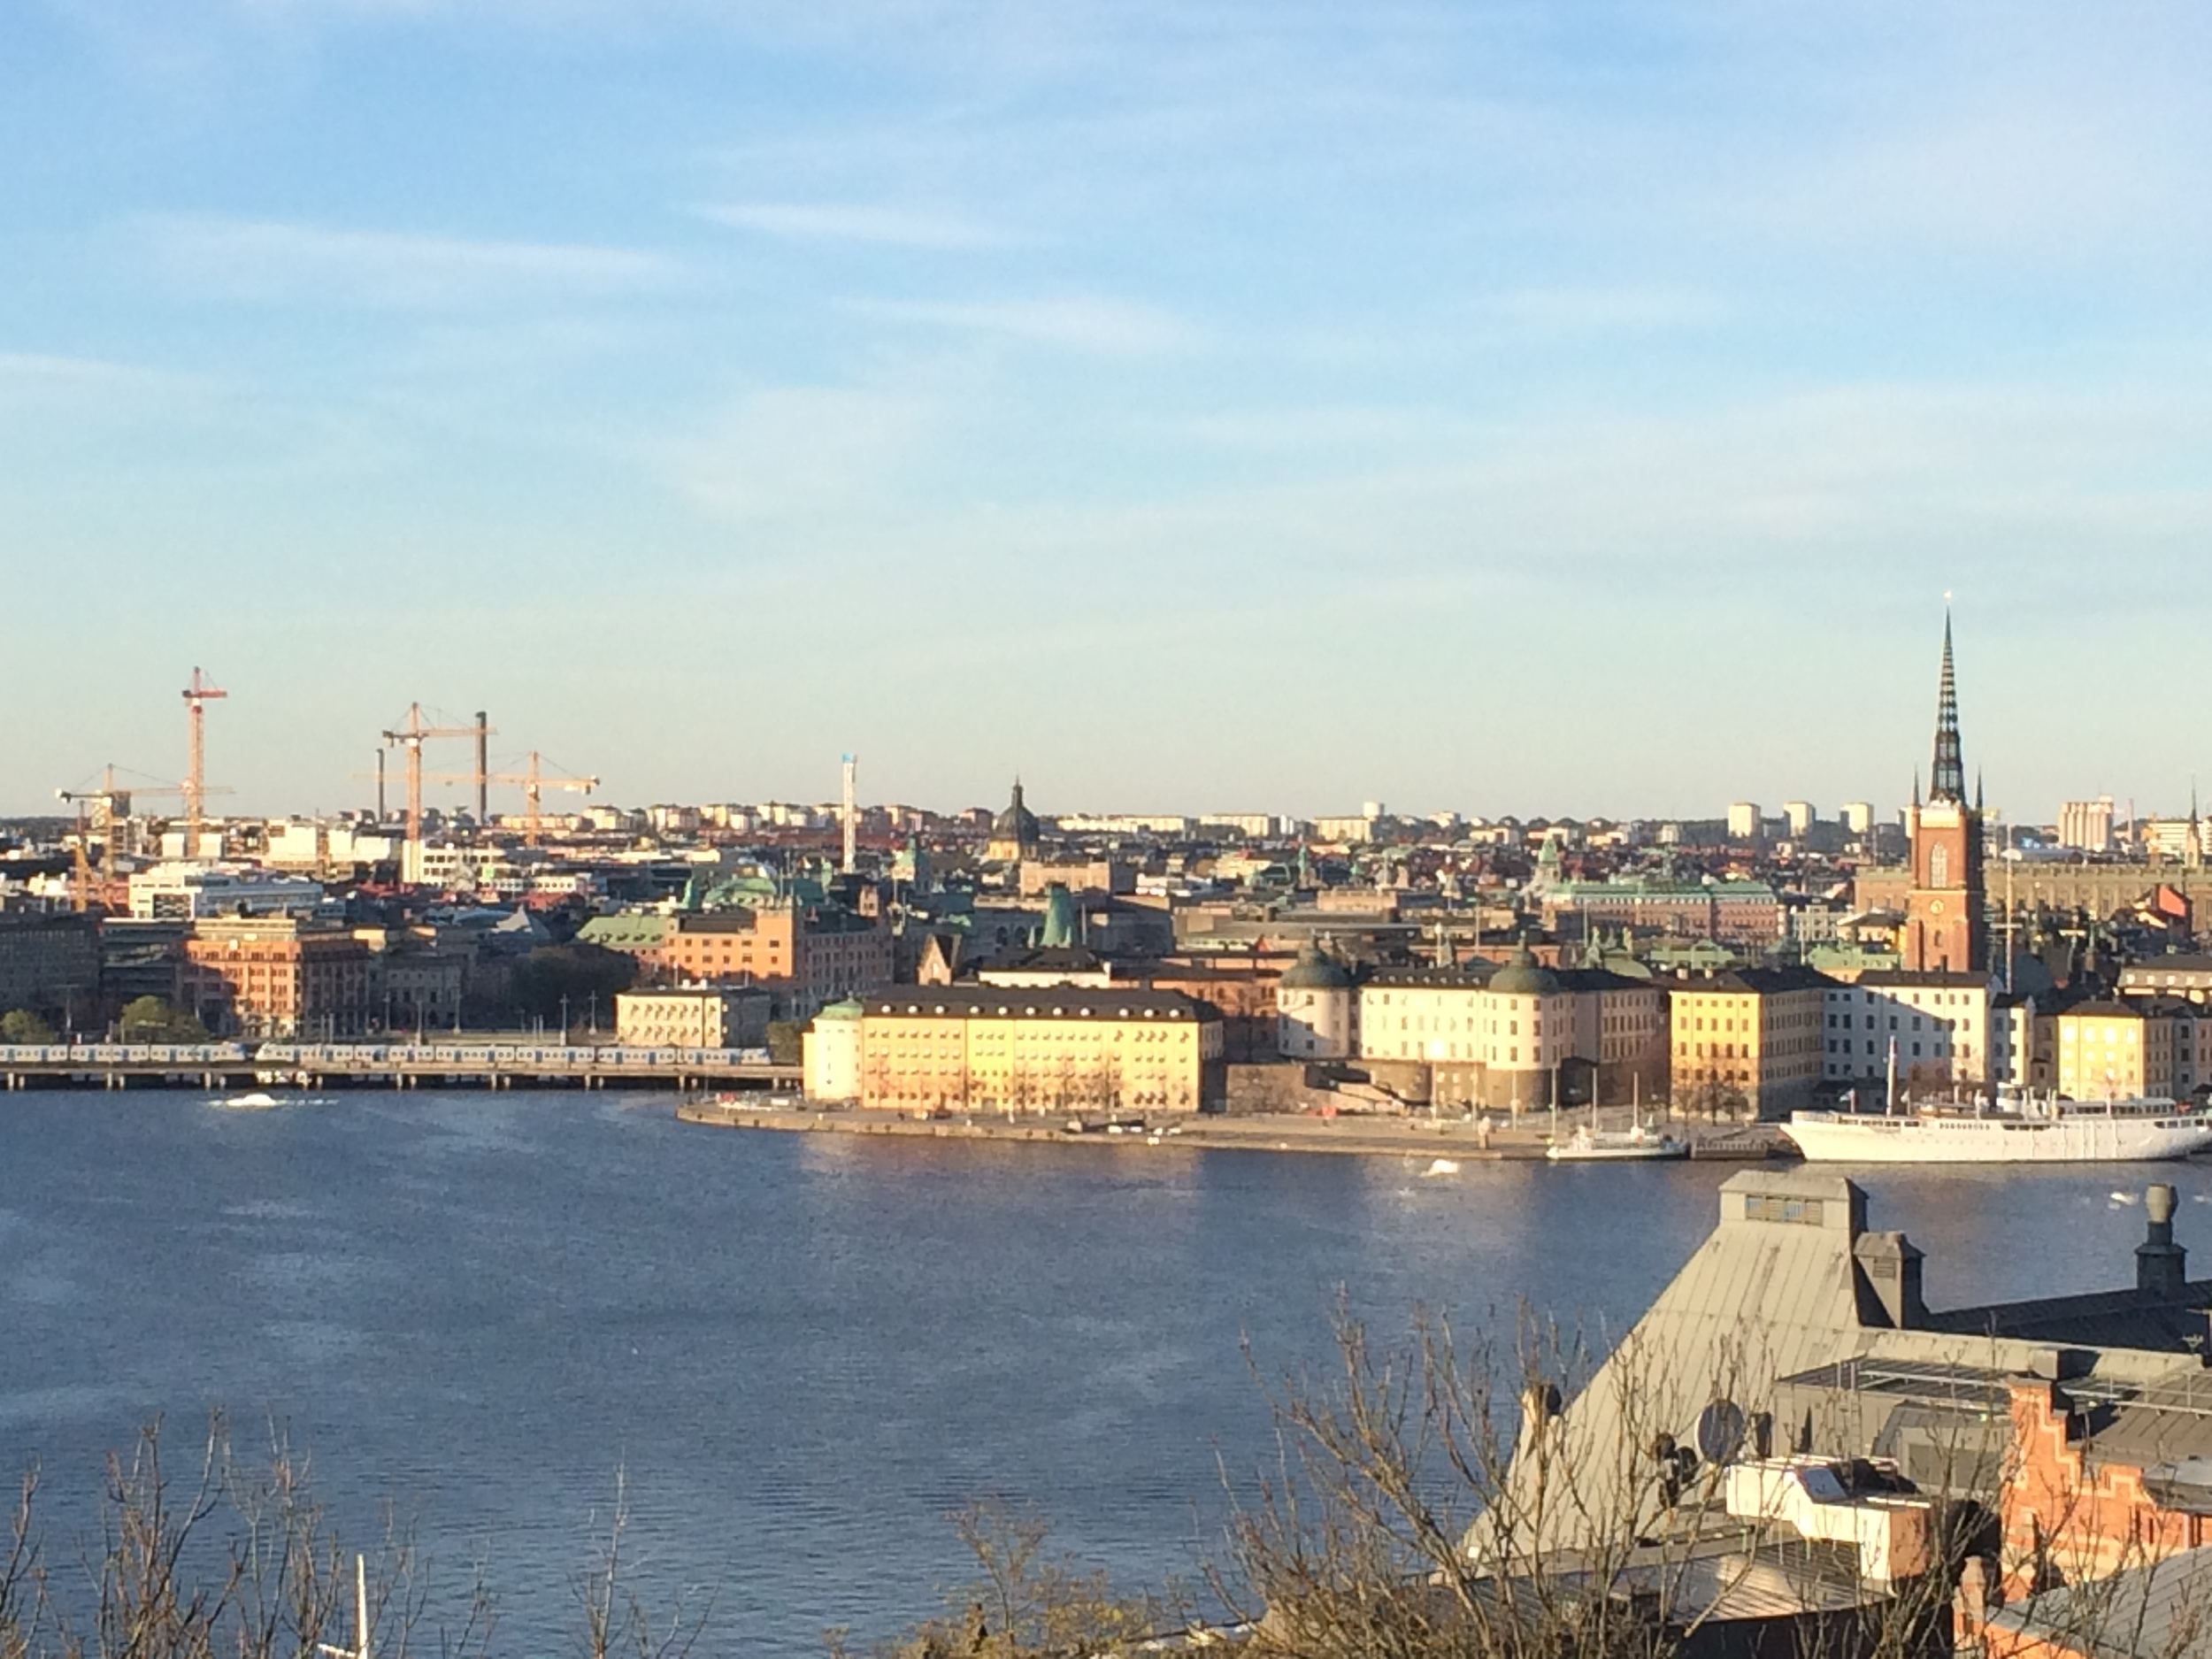 View of the city from Skinnarviksberget in Sodermalm